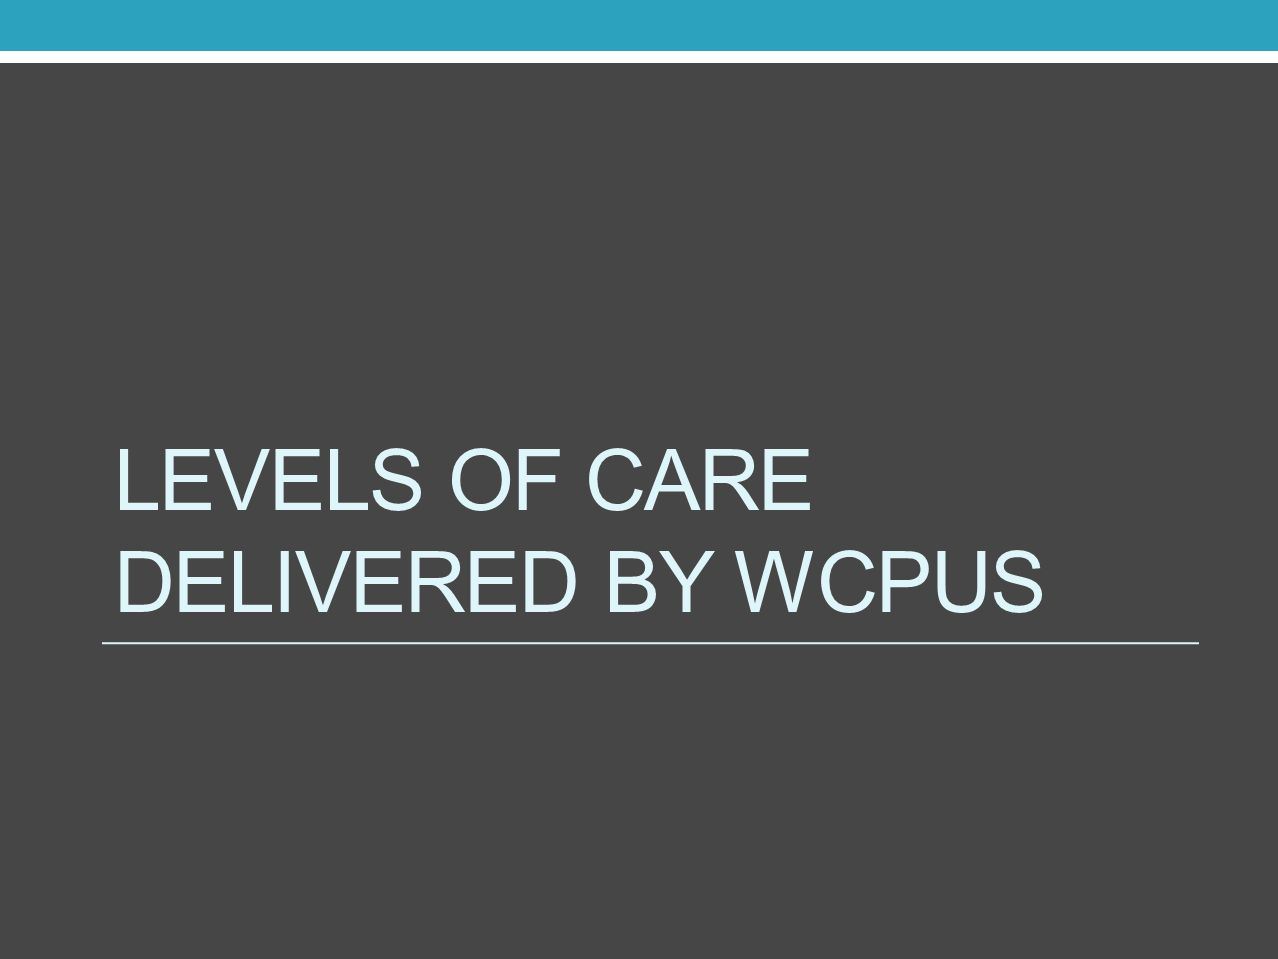 LEVELS OF CARE DELIVERED BY WCPUs